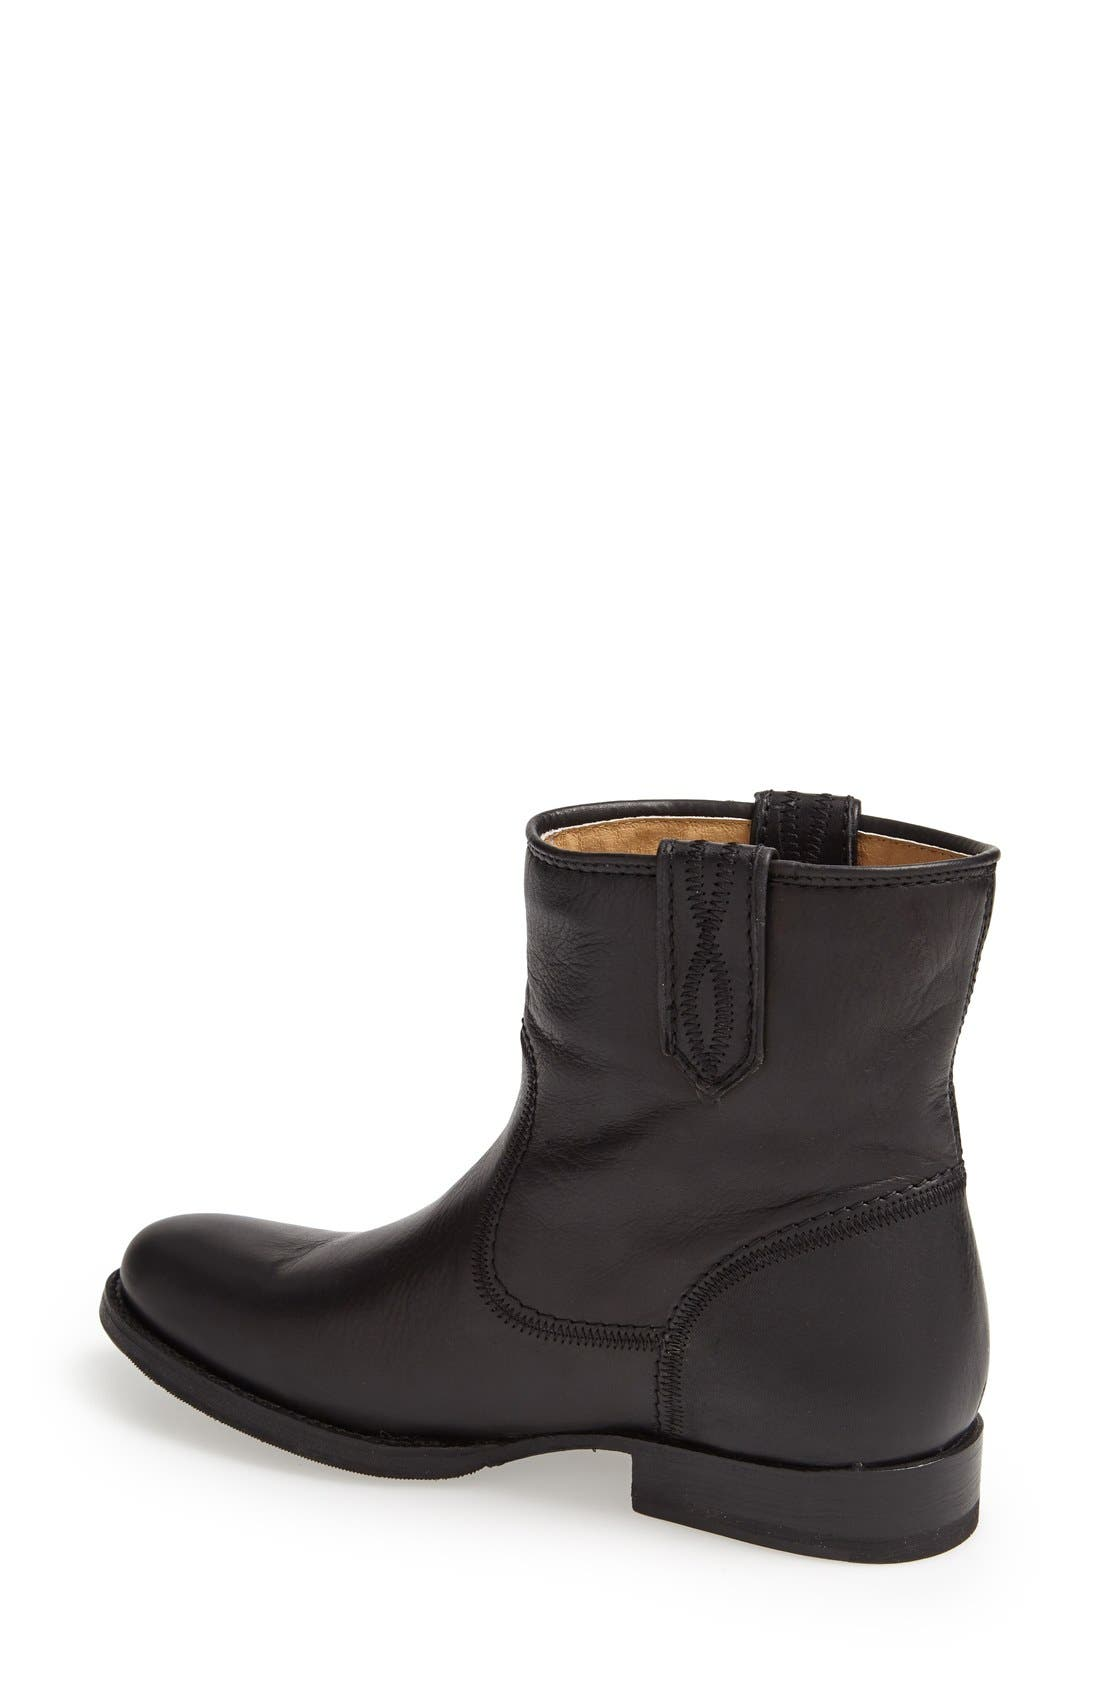 Alternate Image 2  - Frye 'Jamie' Short Boot (Women)